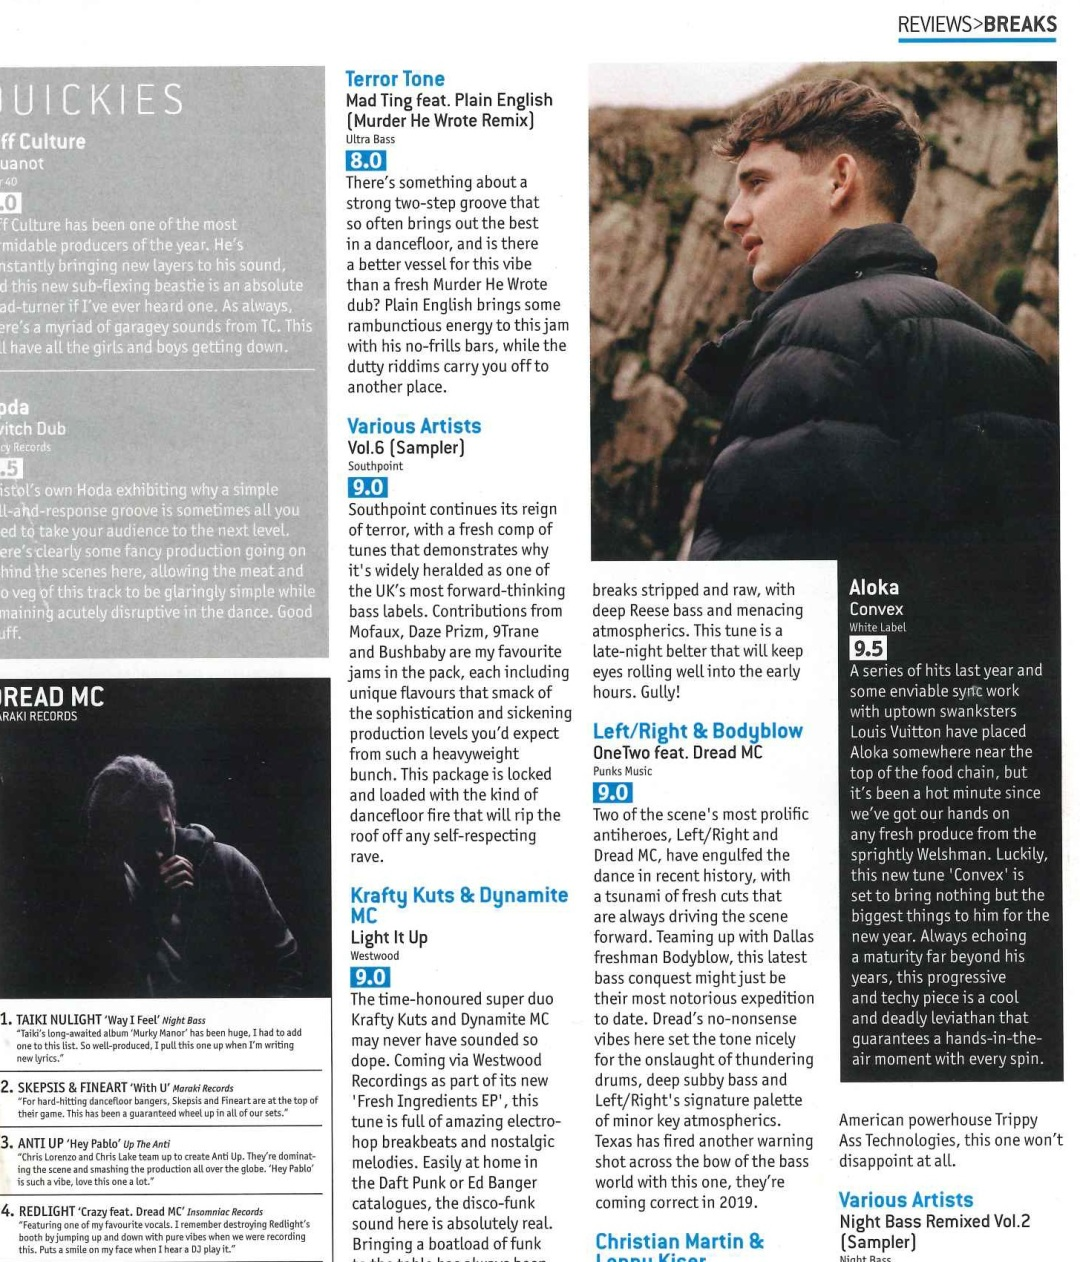 Terror tone Mad Ting djmag scan